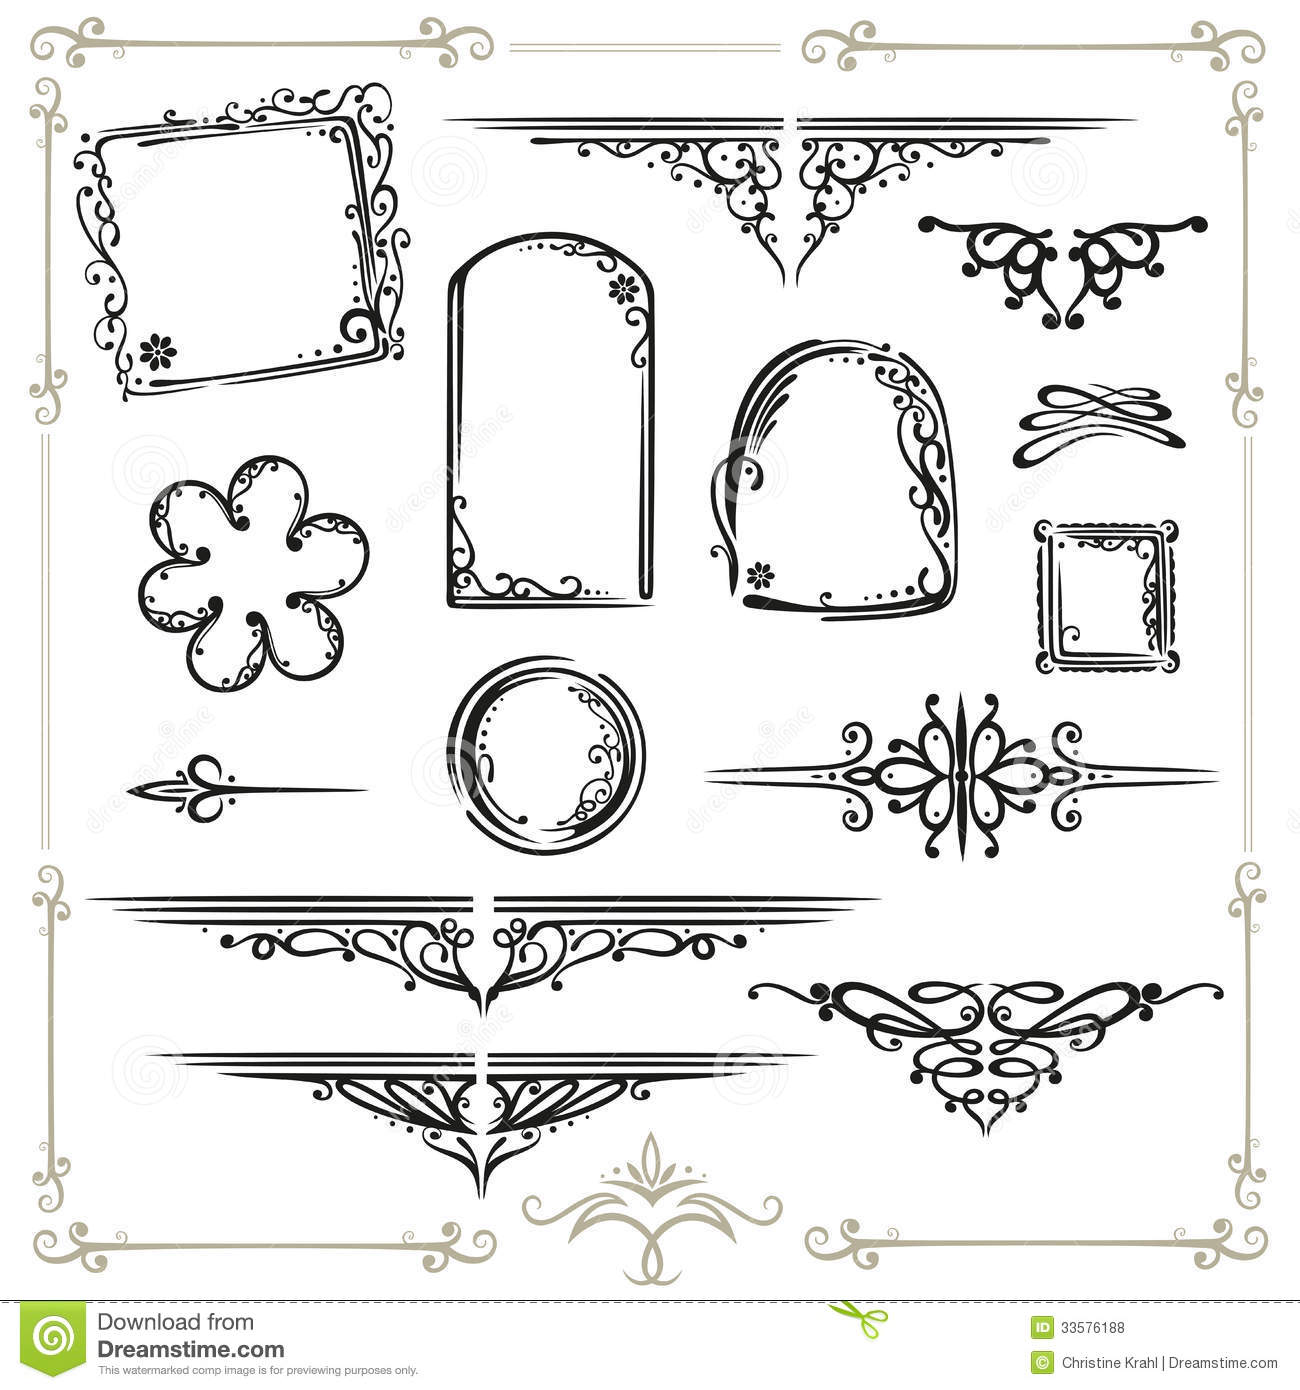 Calligraphy frames royalty free stock photos image